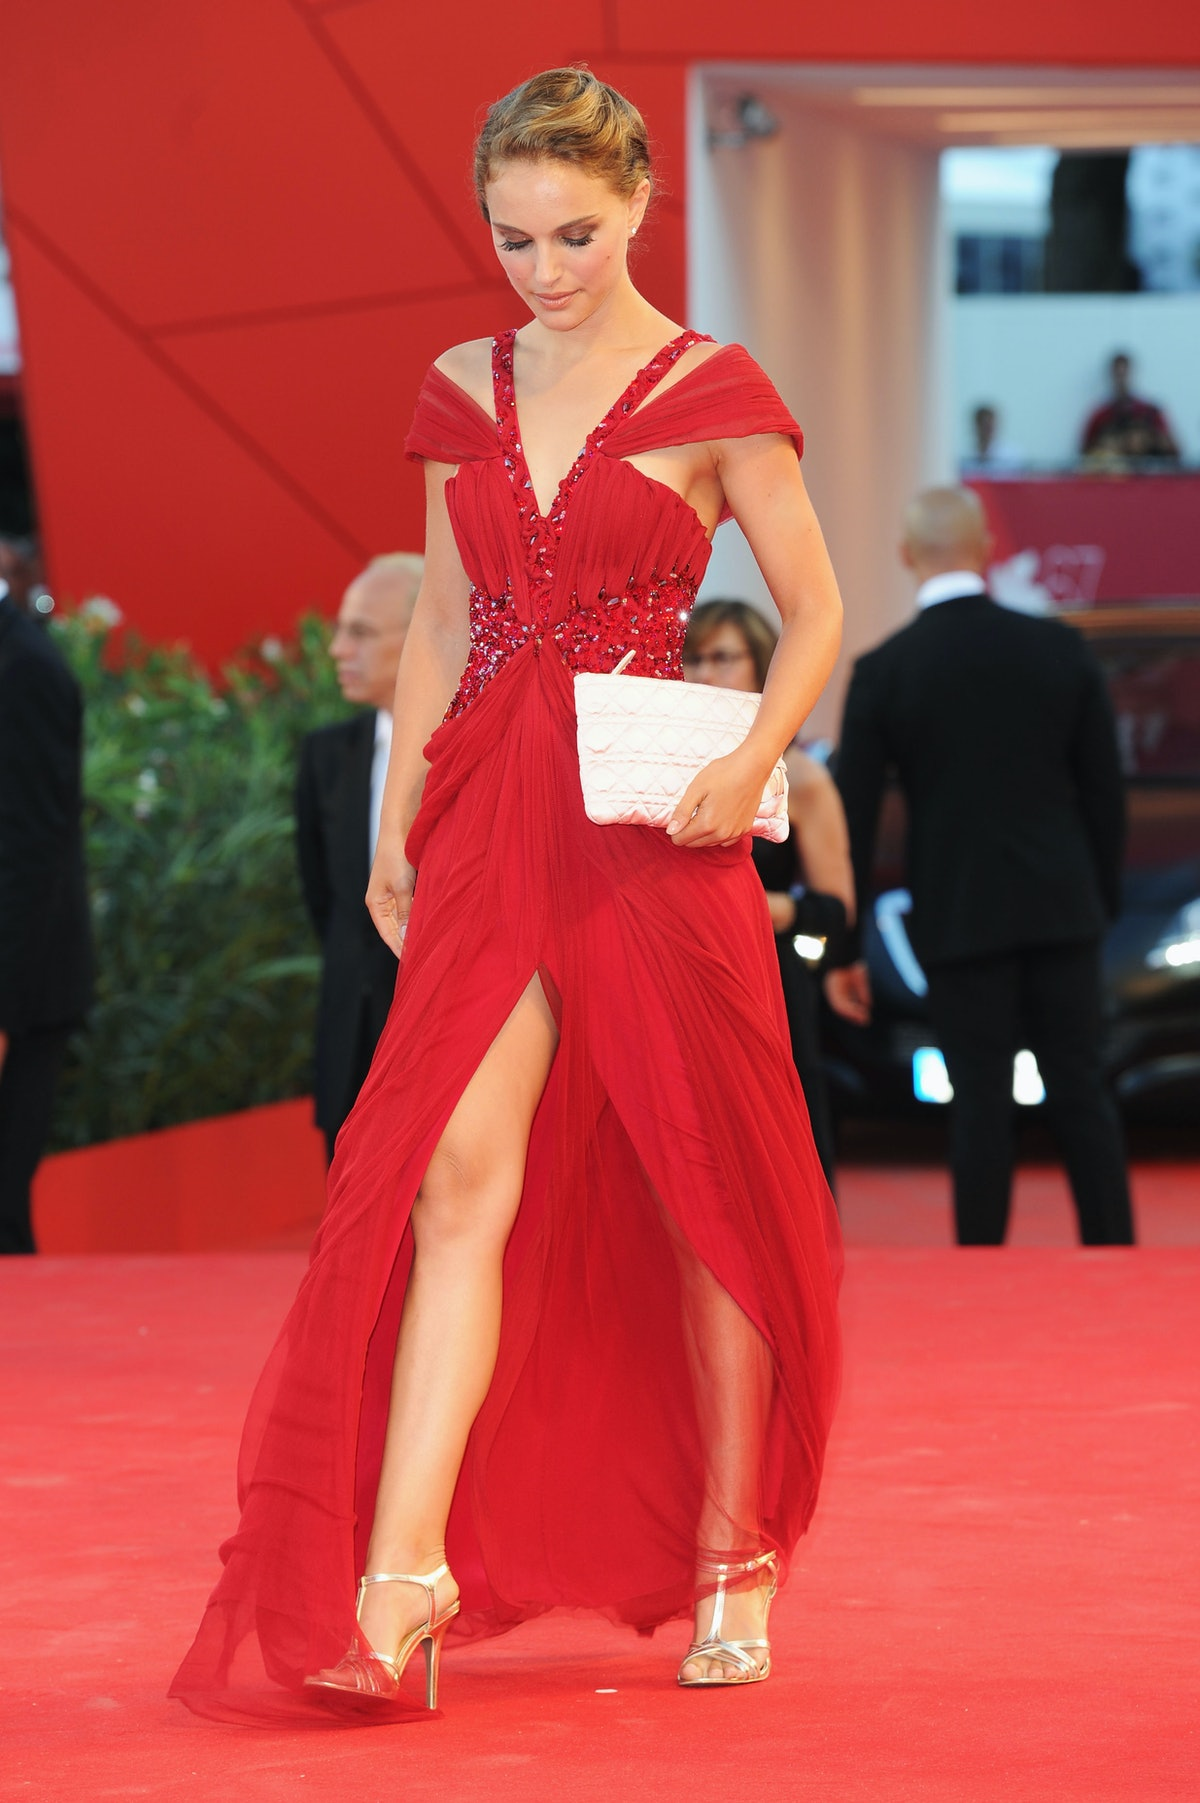 Natalie Protman in red gown.